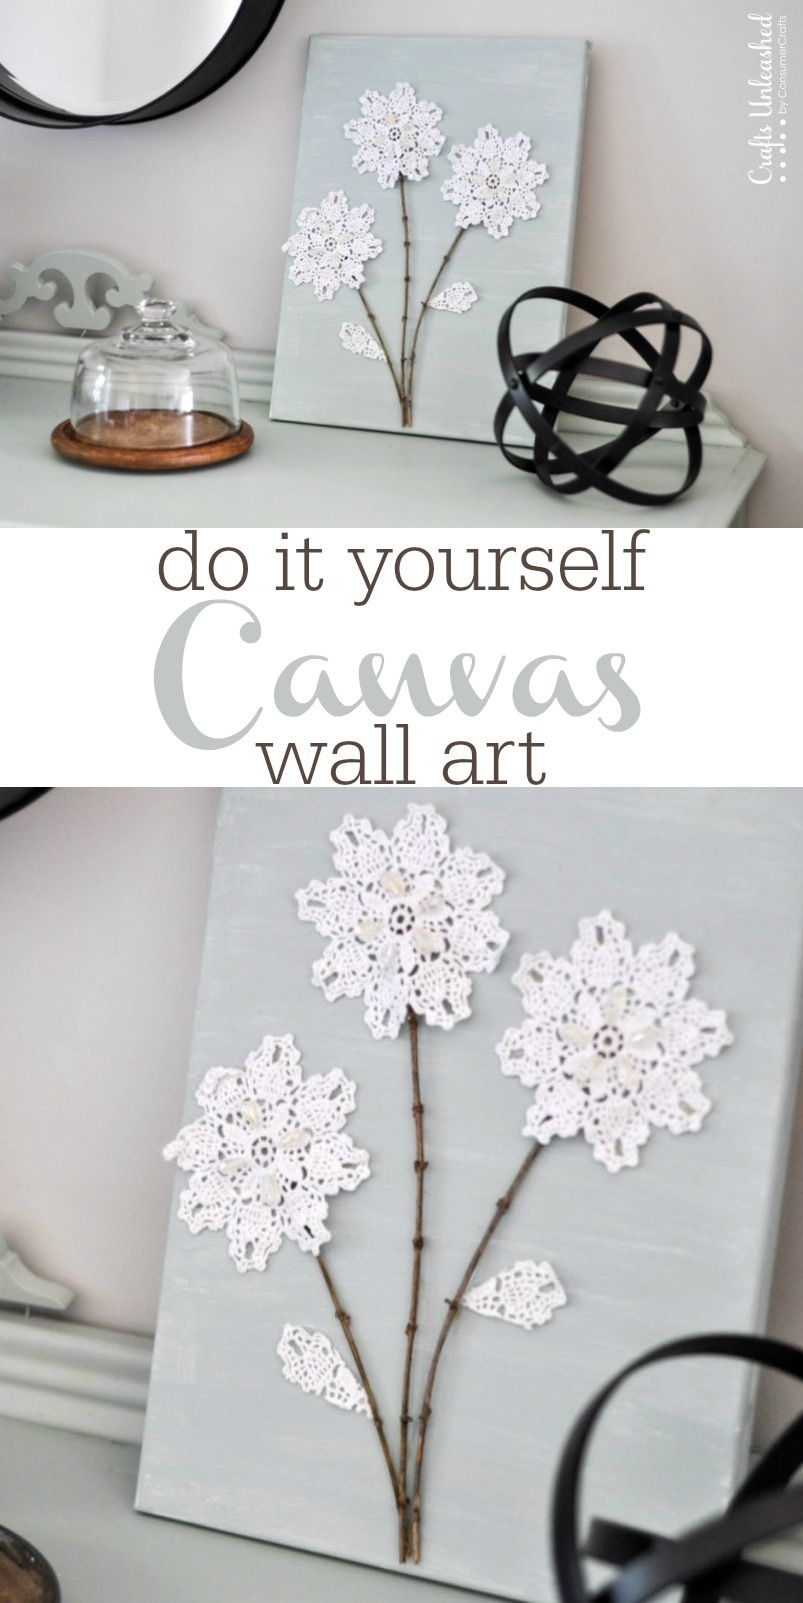 Diy Canvas Wall Art: Shabby Chic Flowers – Crafts Unleashed For Best And Newest Fabric Dress Wall Art (View 3 of 15)